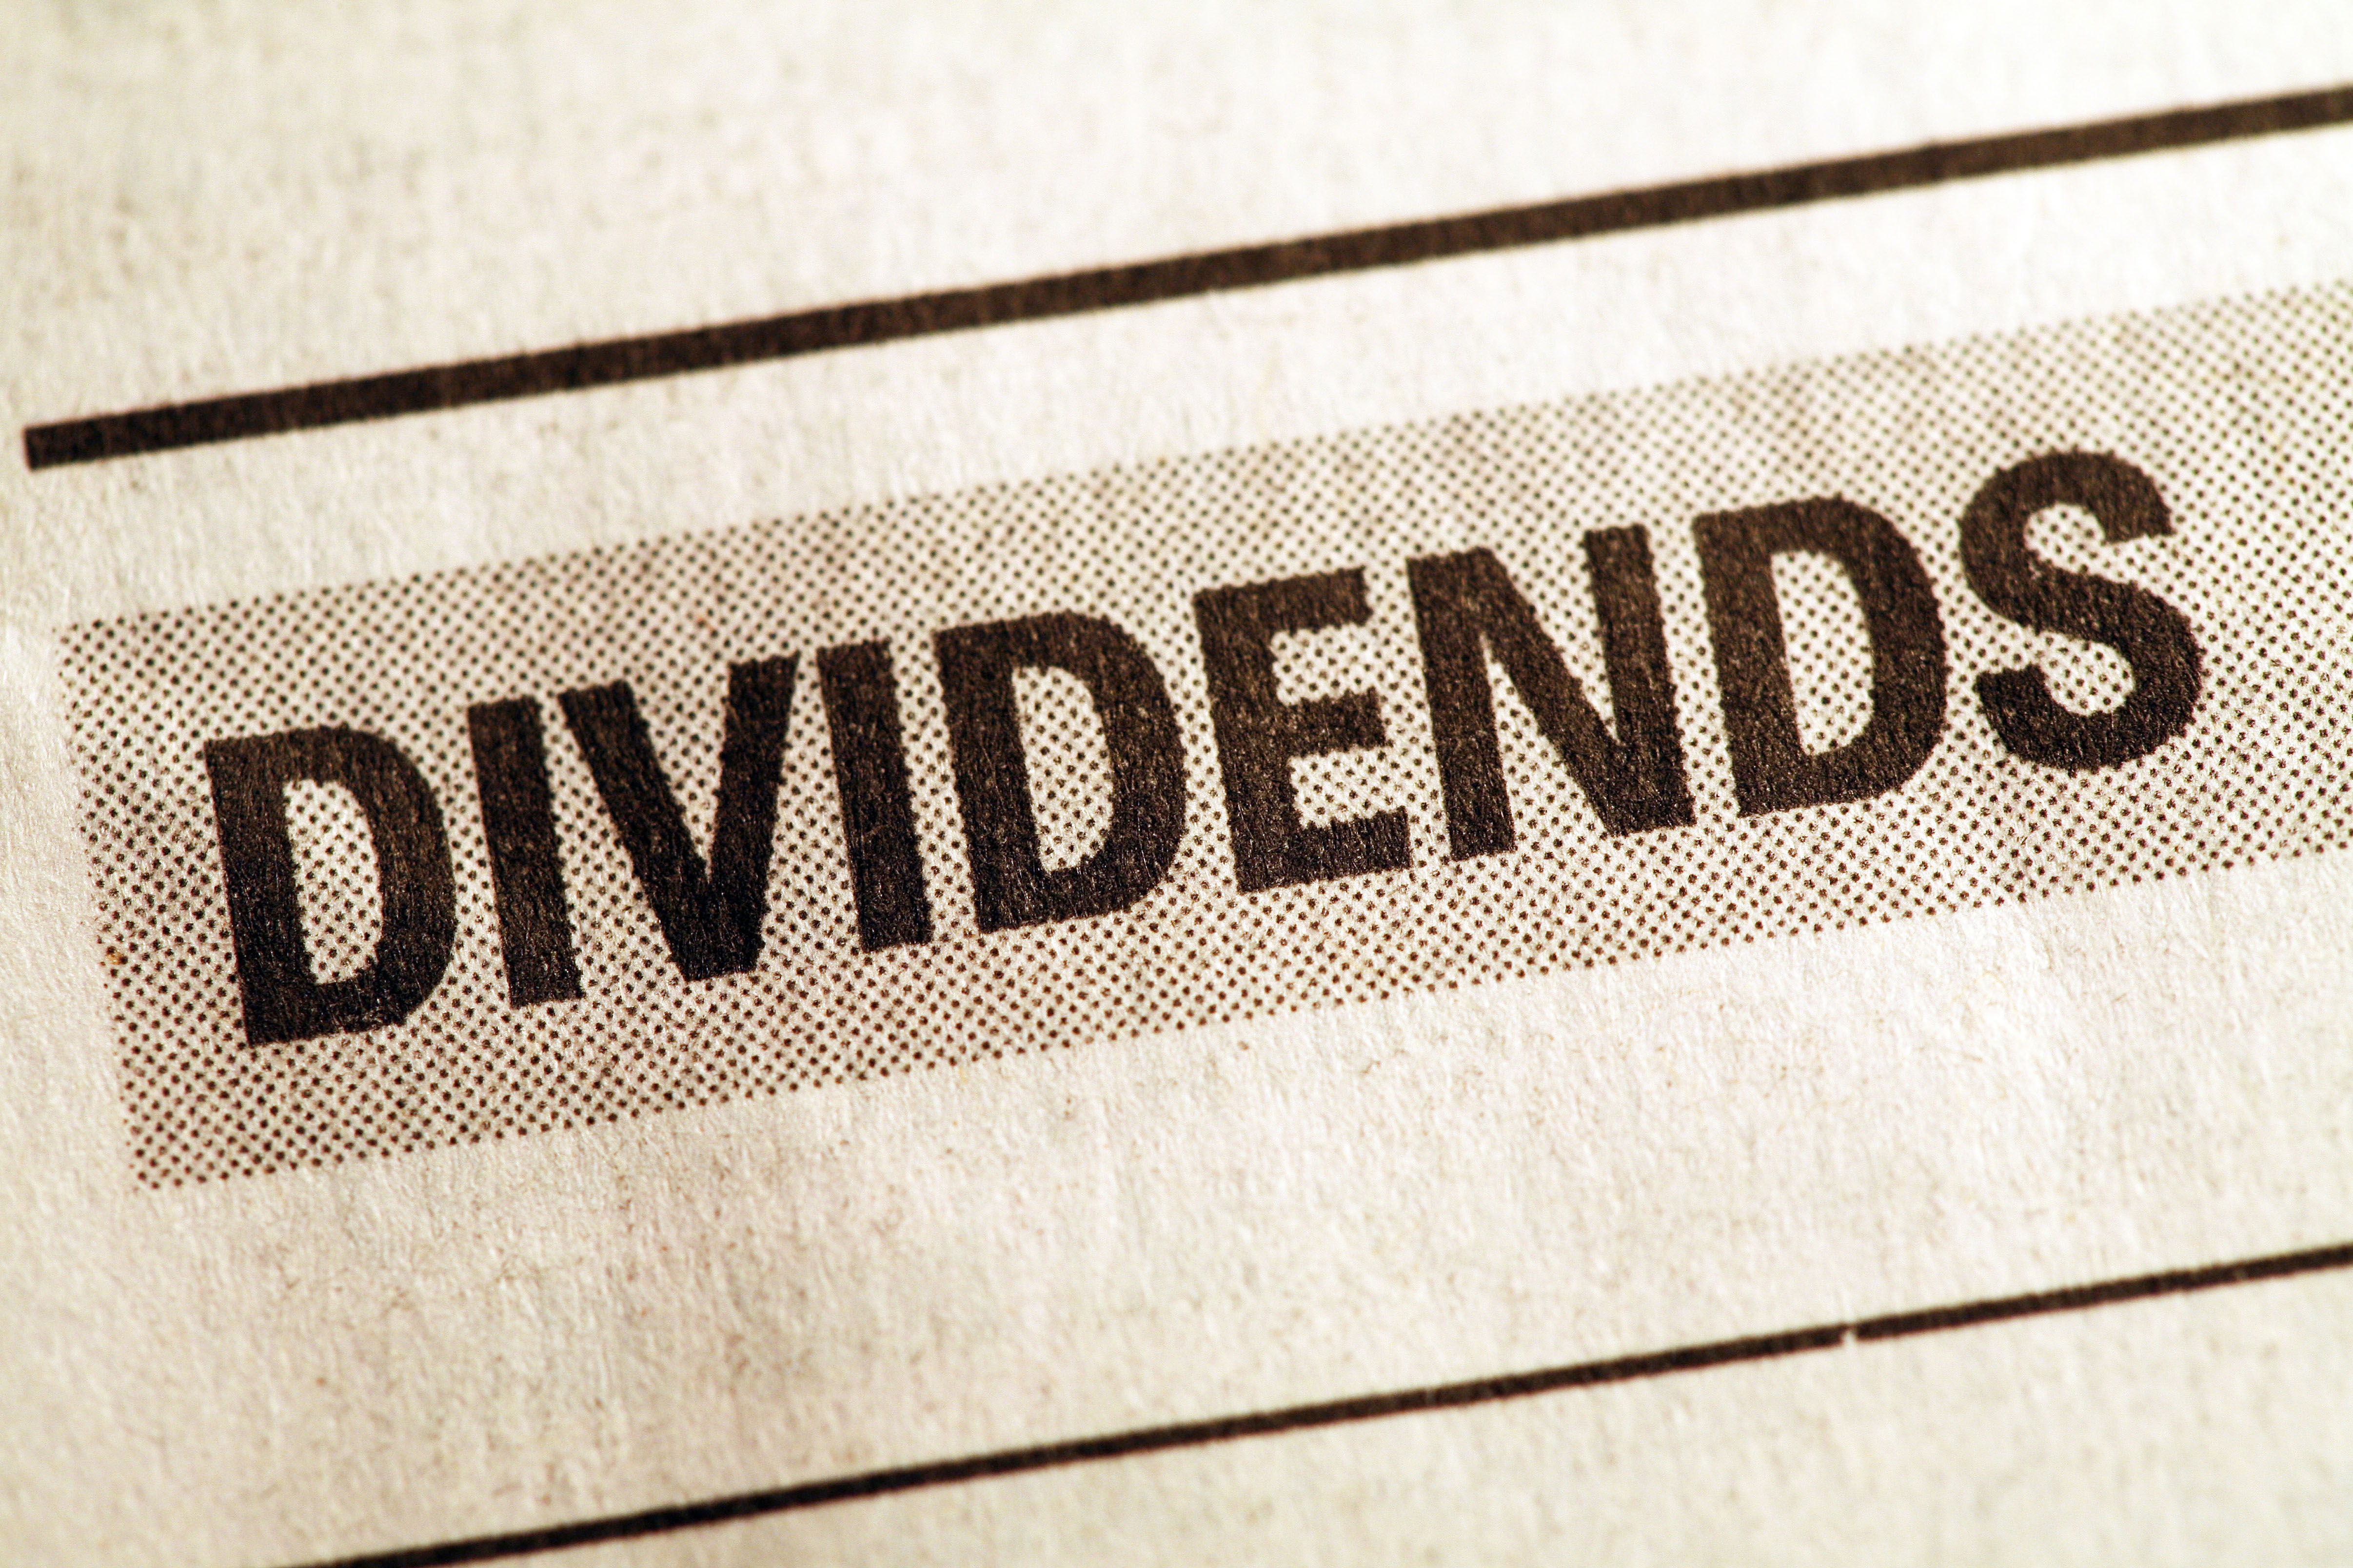 Stock market and dividend payout